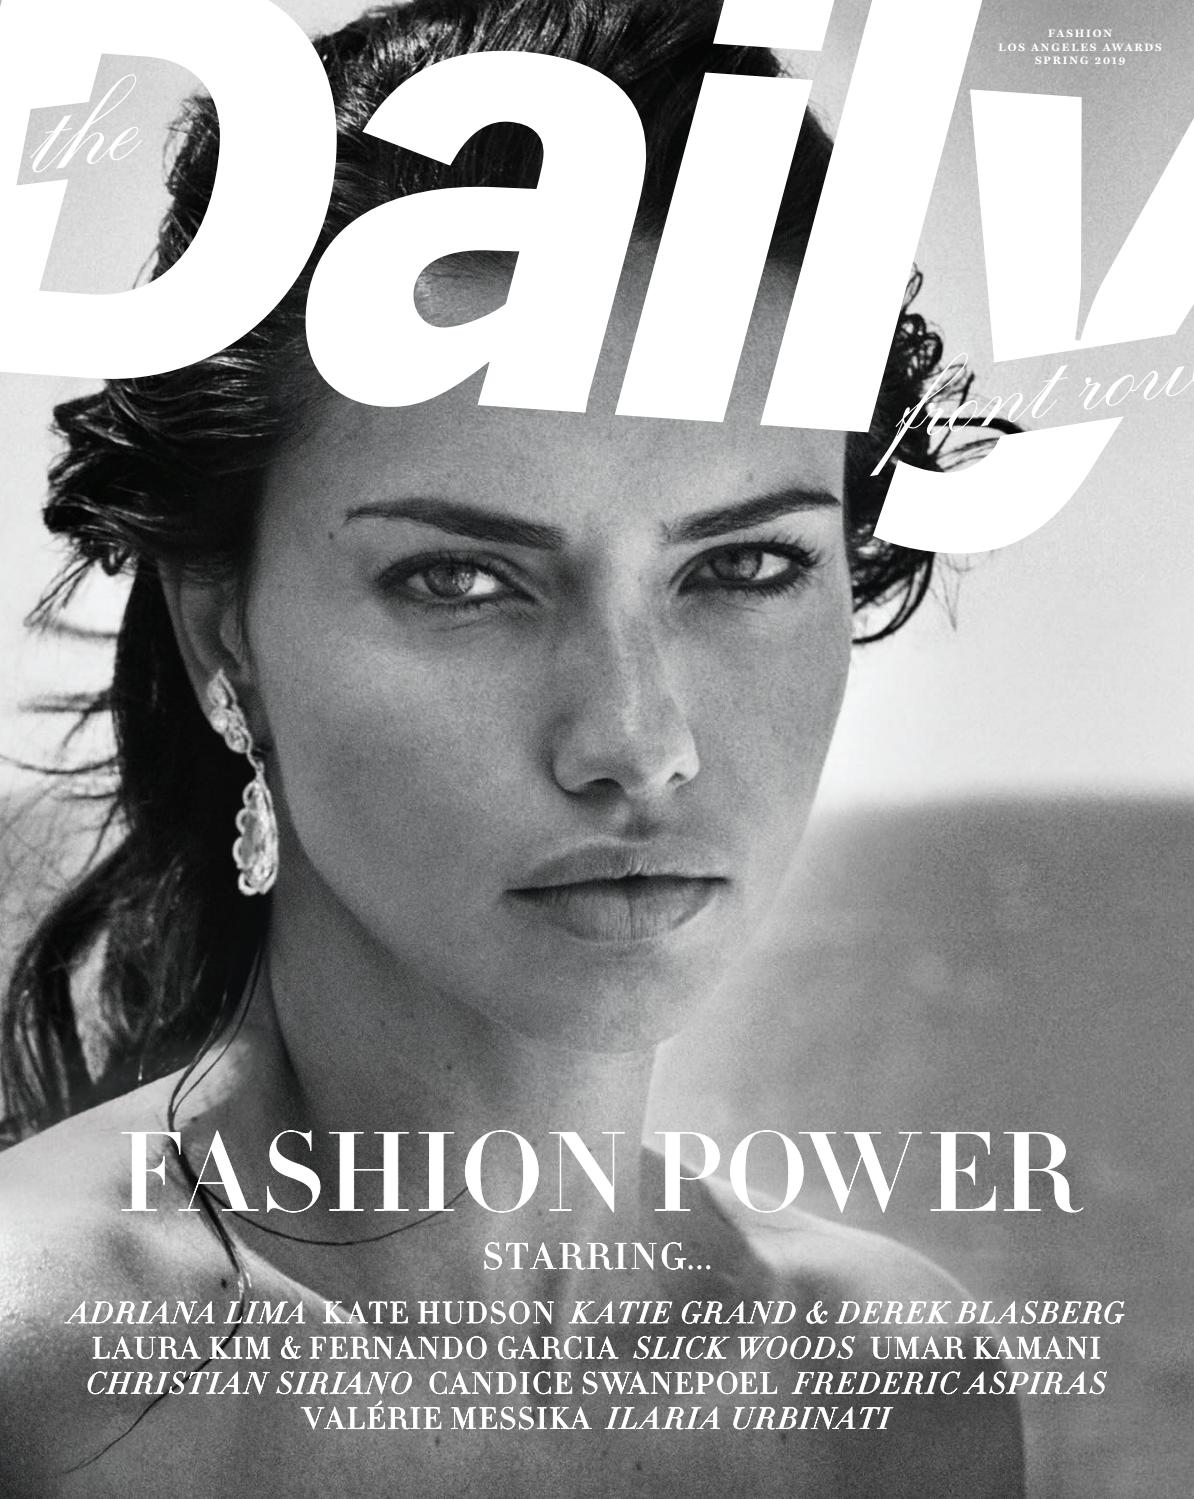 b3d5150b5c9 The Daily Front Row Hollywood by DAILY FRONT ROW INC - issuu